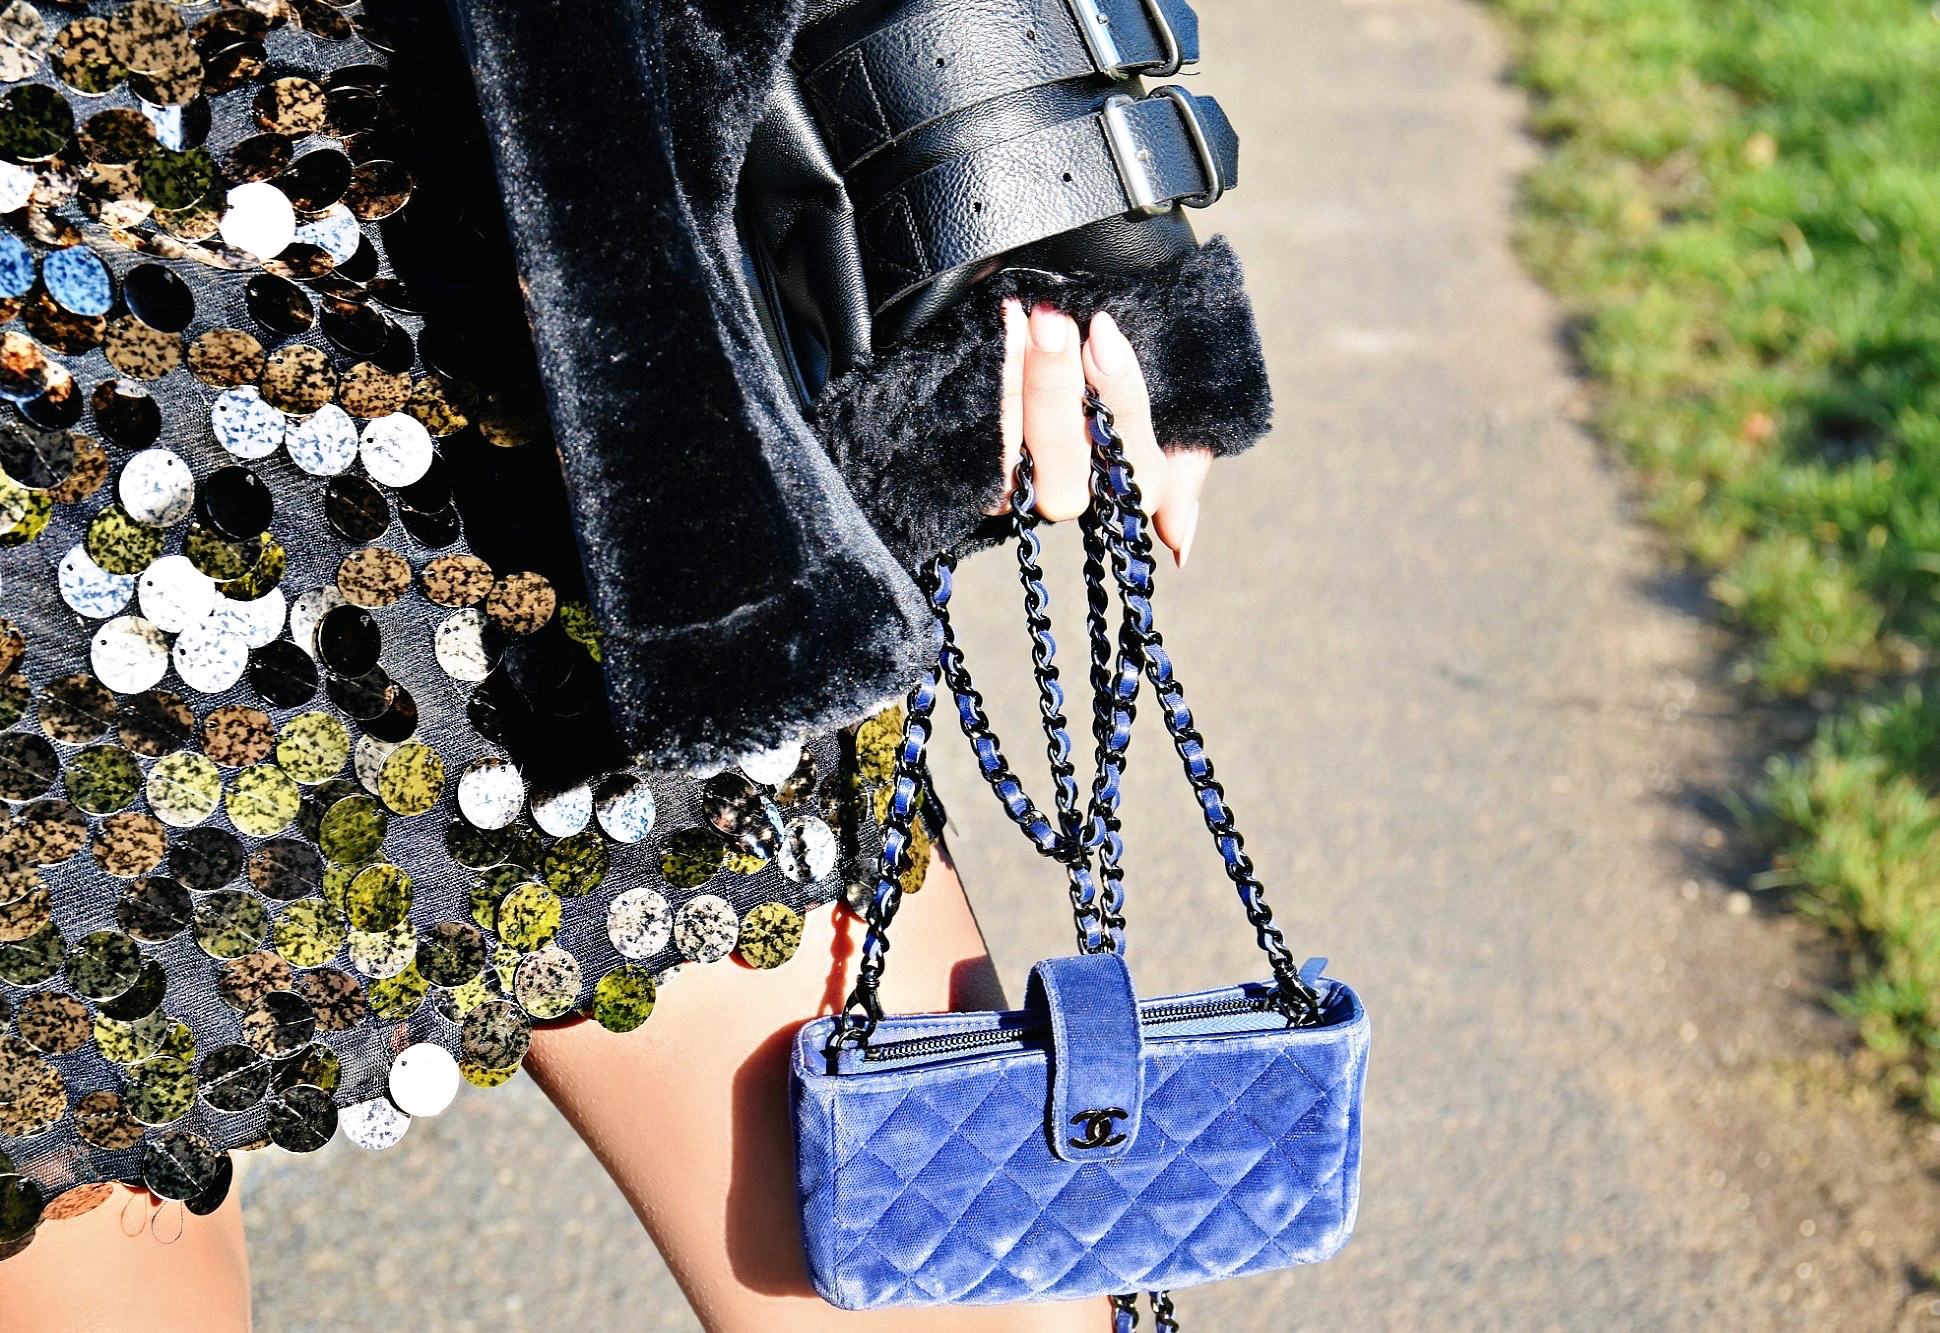 The Holiday Season // Blue Velvet Chanel Wallet On Chain // Motel Finn Sequin Gold and Black Dress // Acne Studios Shearling Coat // Gucci Pearl Ankle Booties // Frame White Button Up // Rhinestone Choker // Los Angeles Fashion Blogger Daphne Blunt // Empure France, The Charante Region // France Travel Diary // Winter Fashions // Holiday Party Dresses: To Style, With Love